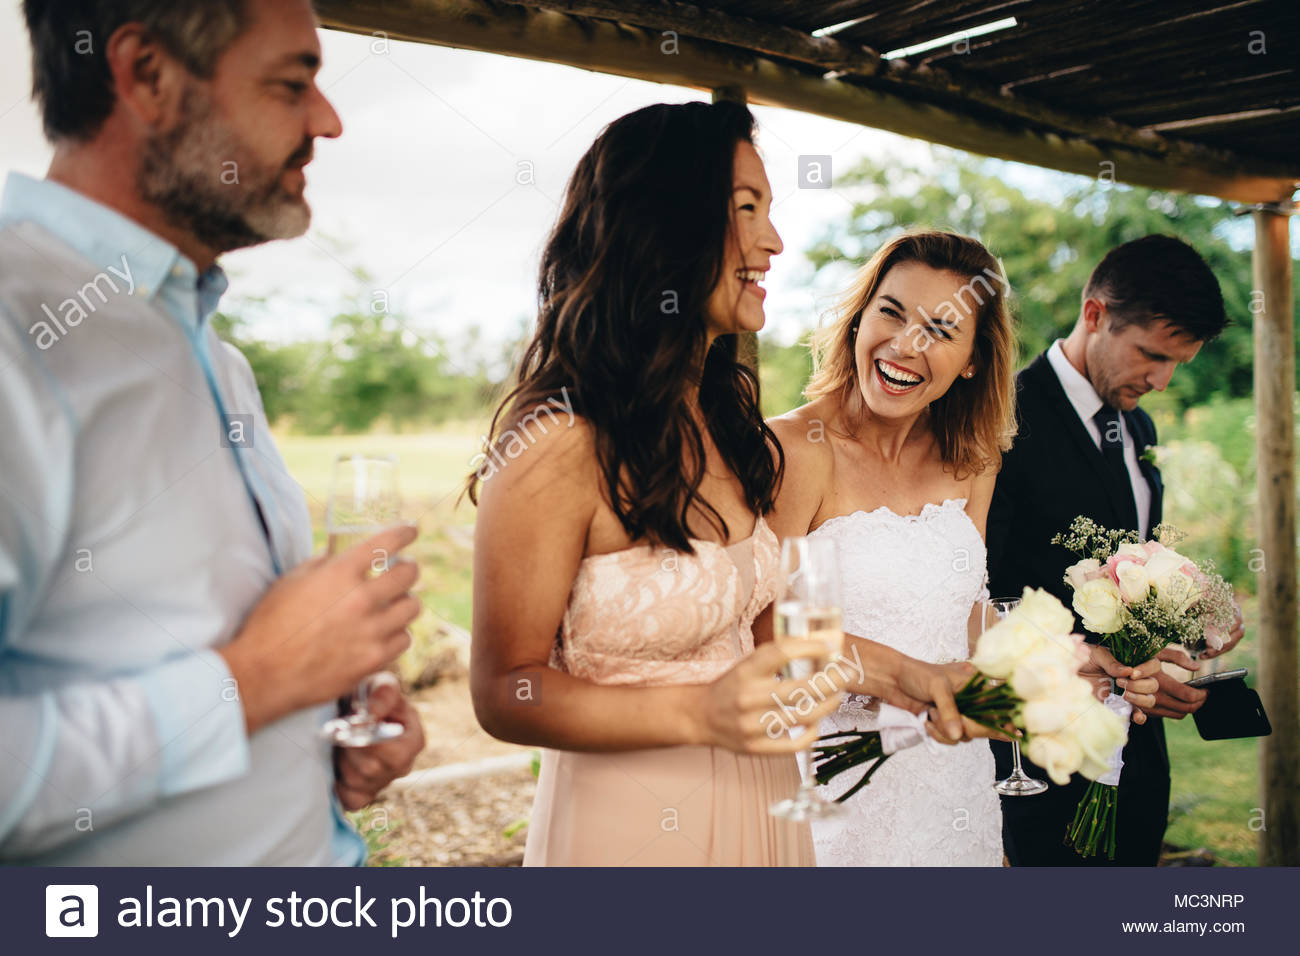 Happy Bridesmaid Giving Speech To Bride And Groom At Wedding